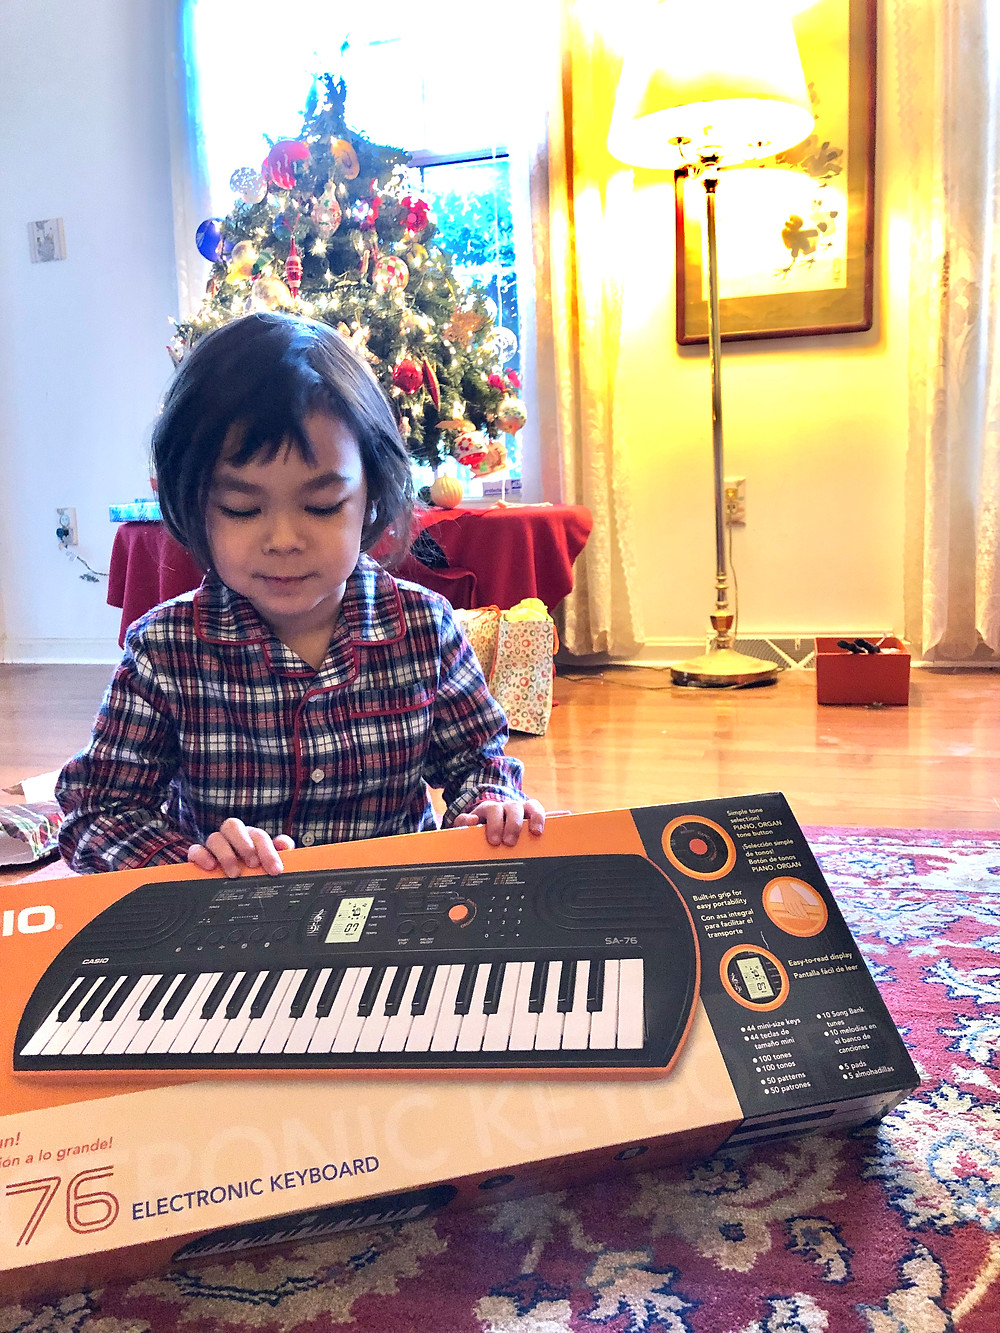 best toddler birthday gifts, Casio keyboard, keyboard for kids, gifts for musical kids